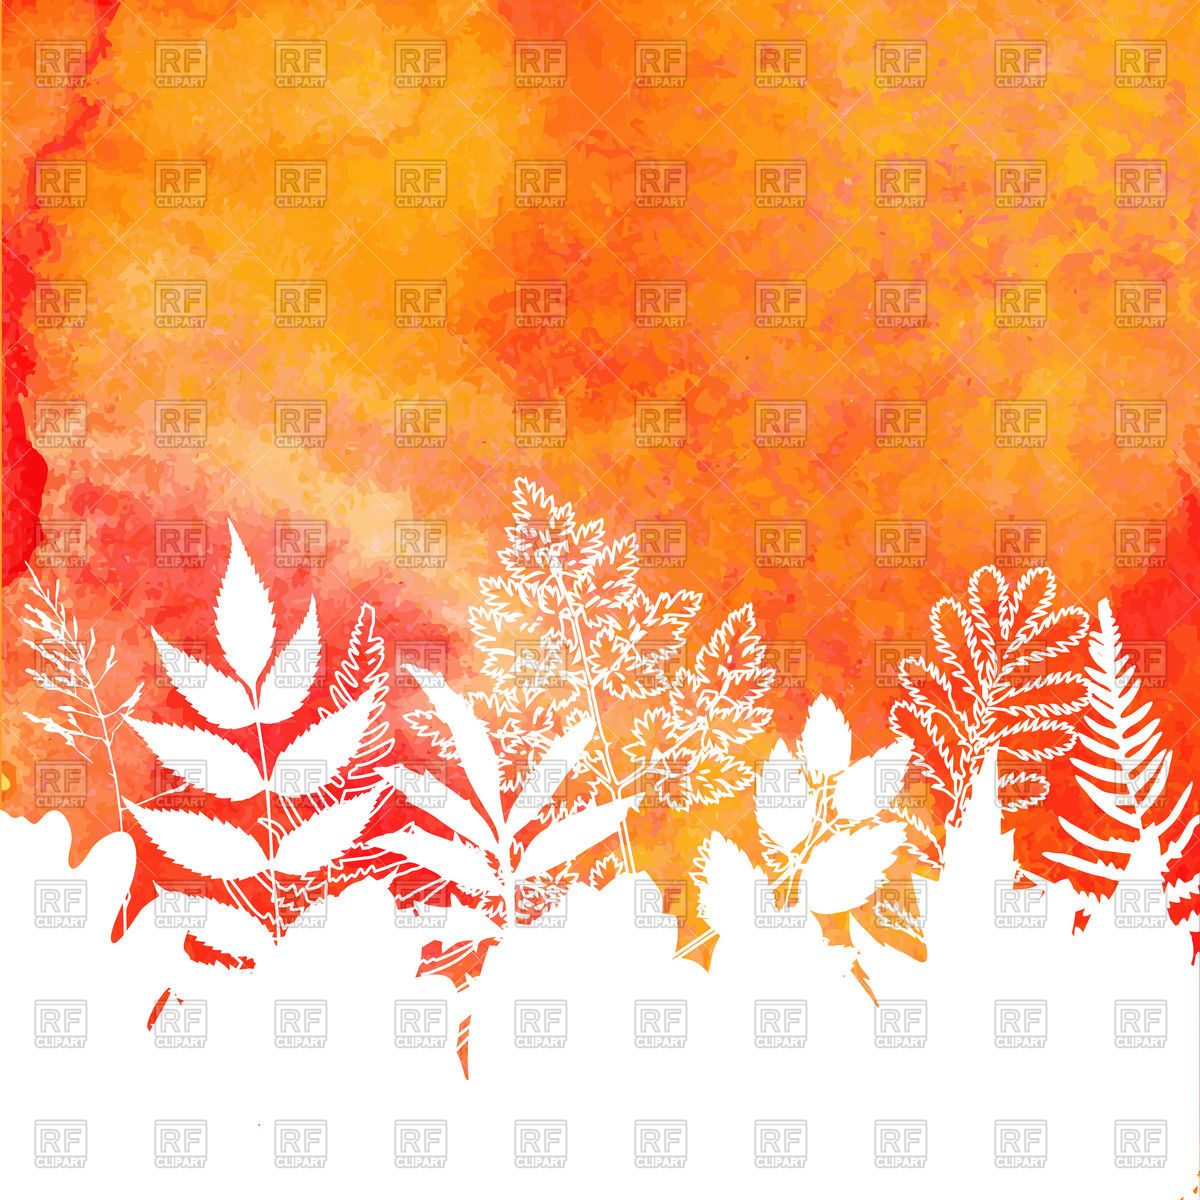 Orange watercolor painted background with autumn foliage Vector 1200x1200